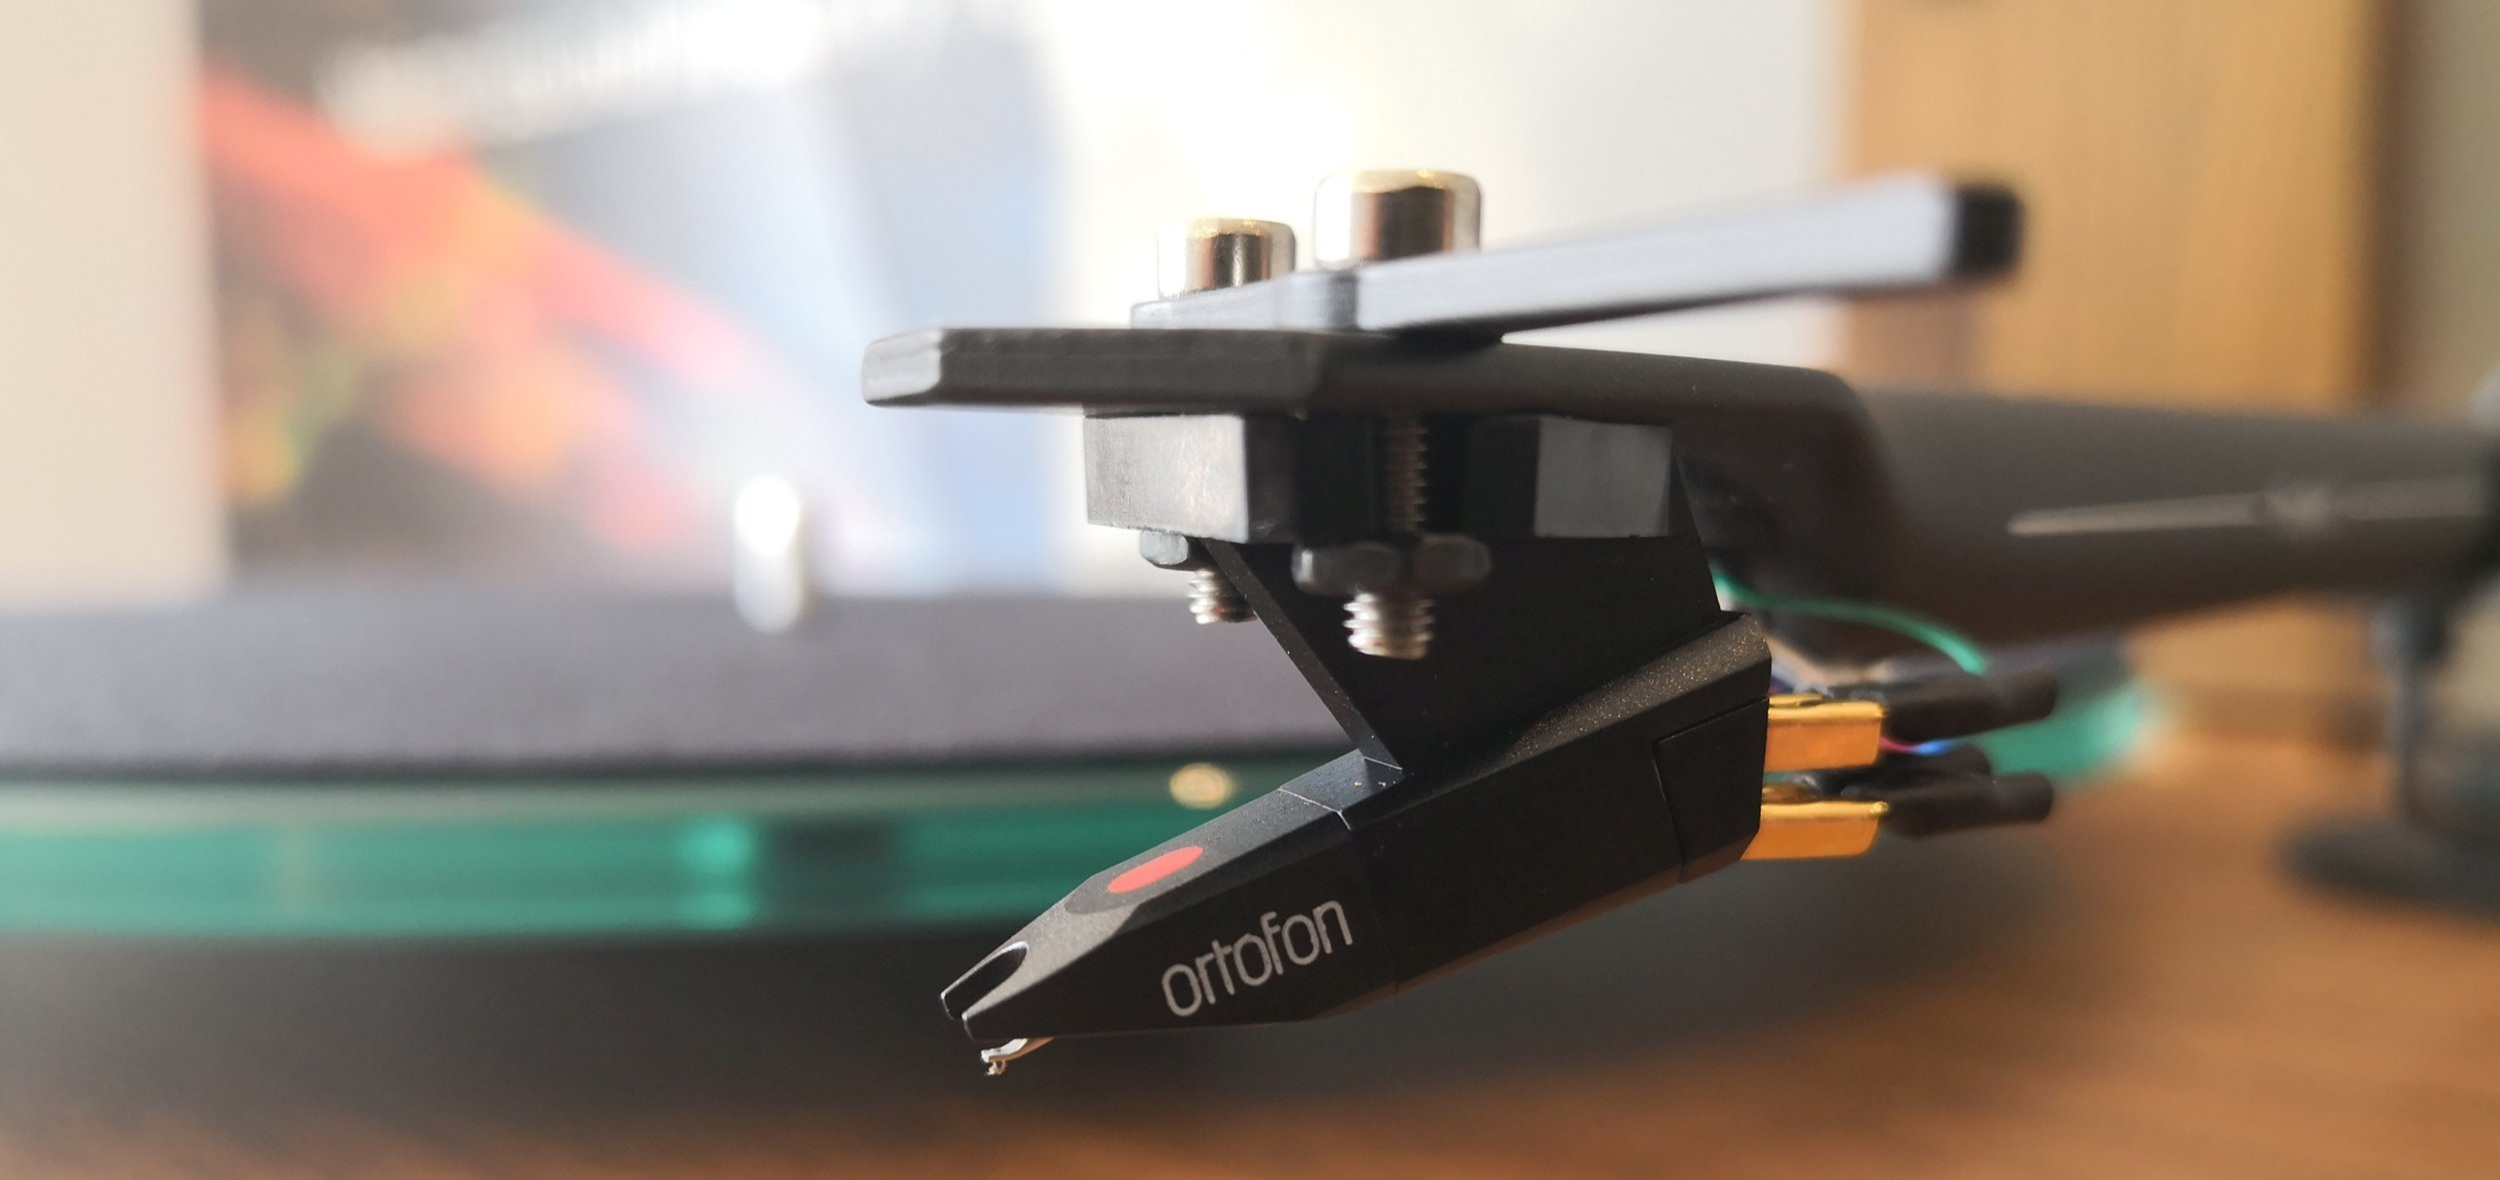 The well built tonearm is fitted with an old favourite, the Ortofon OM5e cartridge.